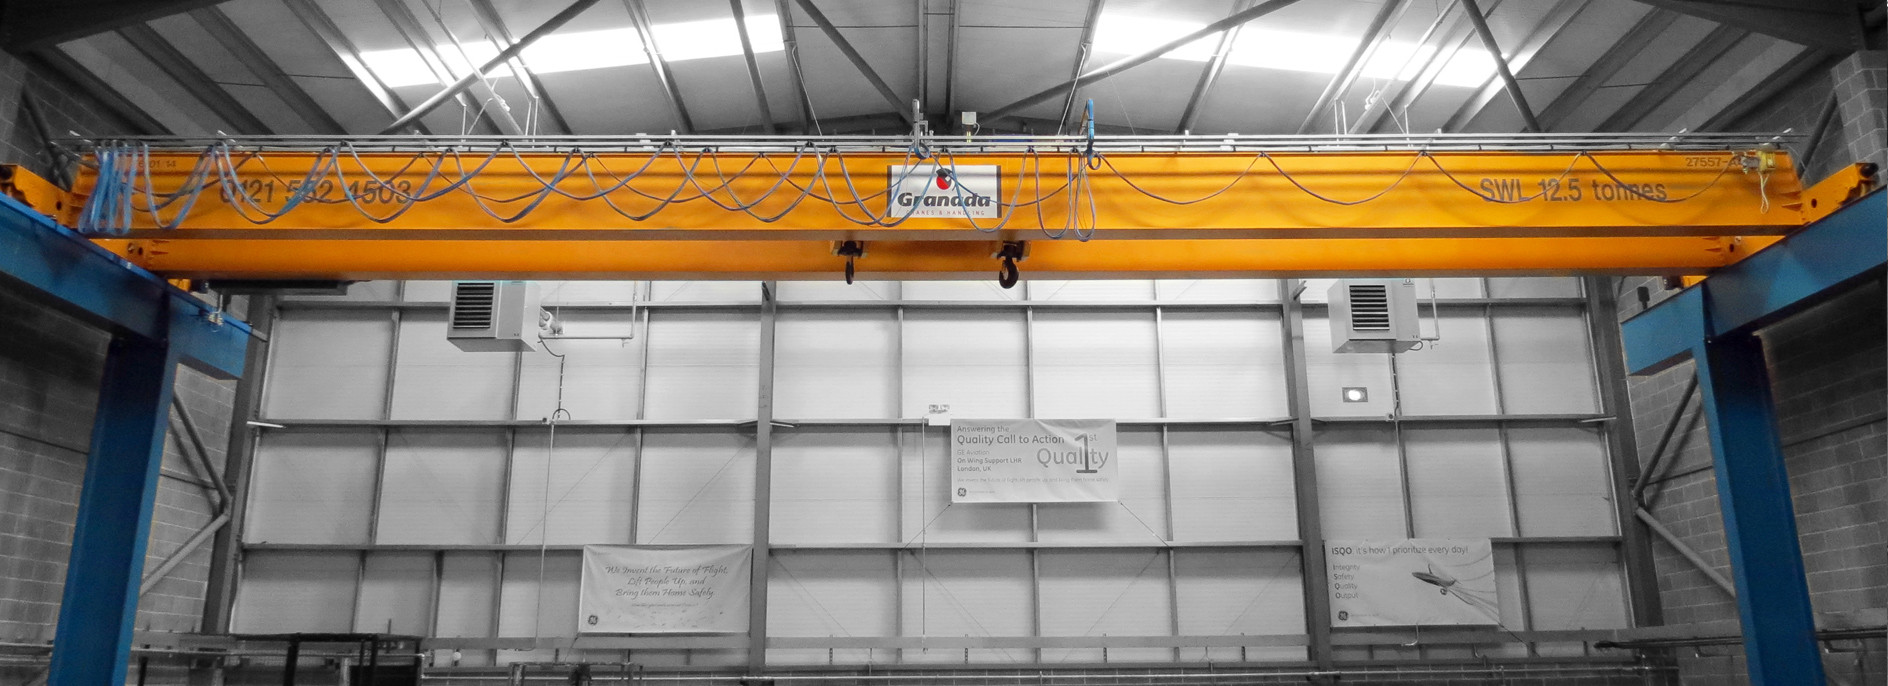 Material handling case study from the aviation industry, specifically on wing support.